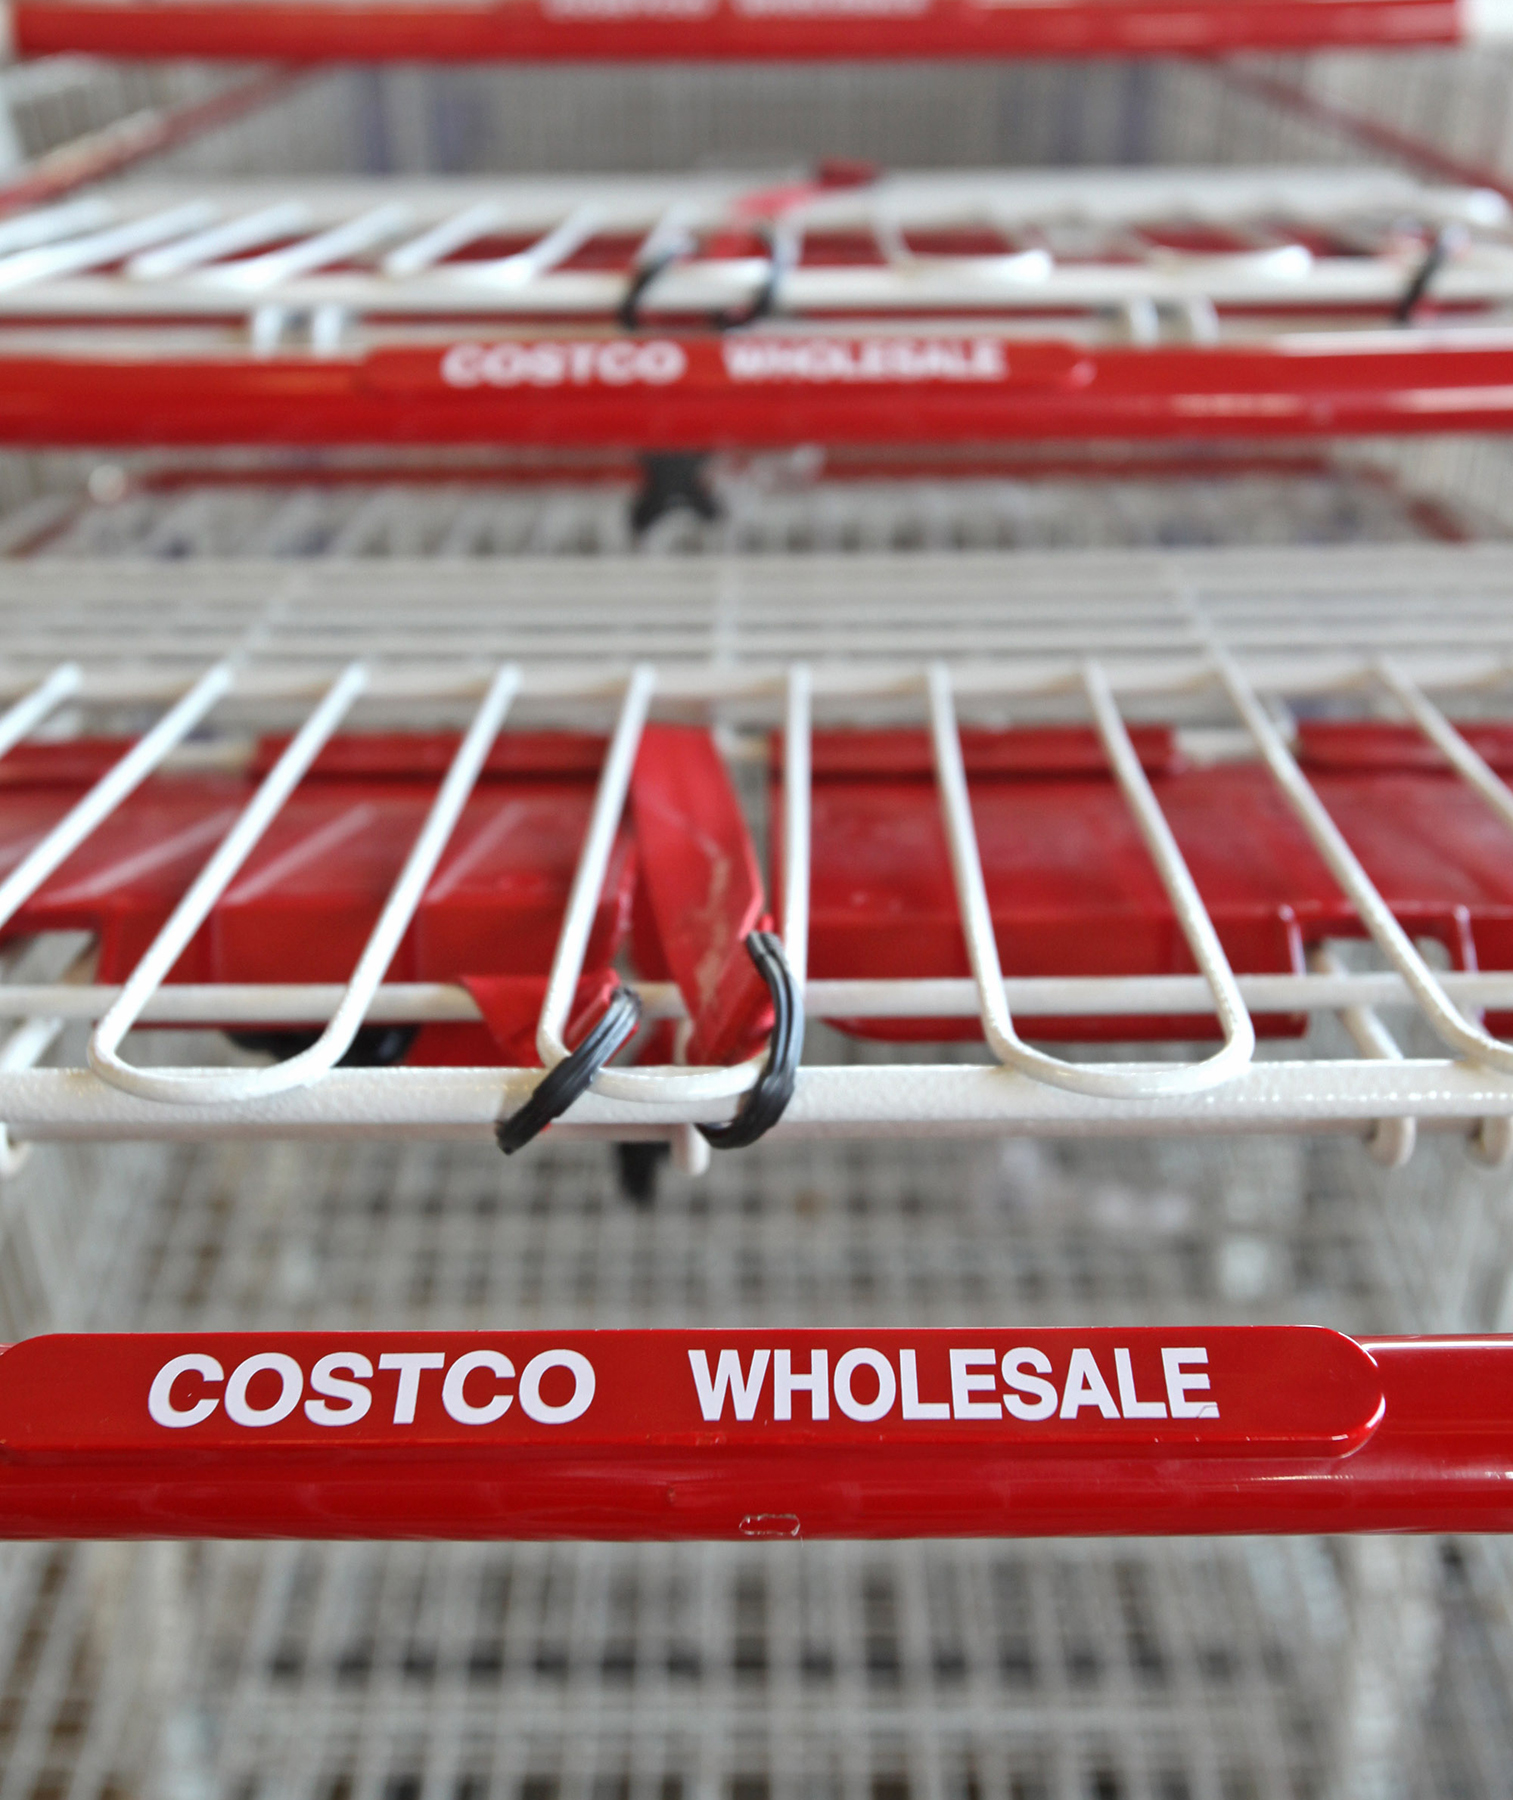 Costco carts